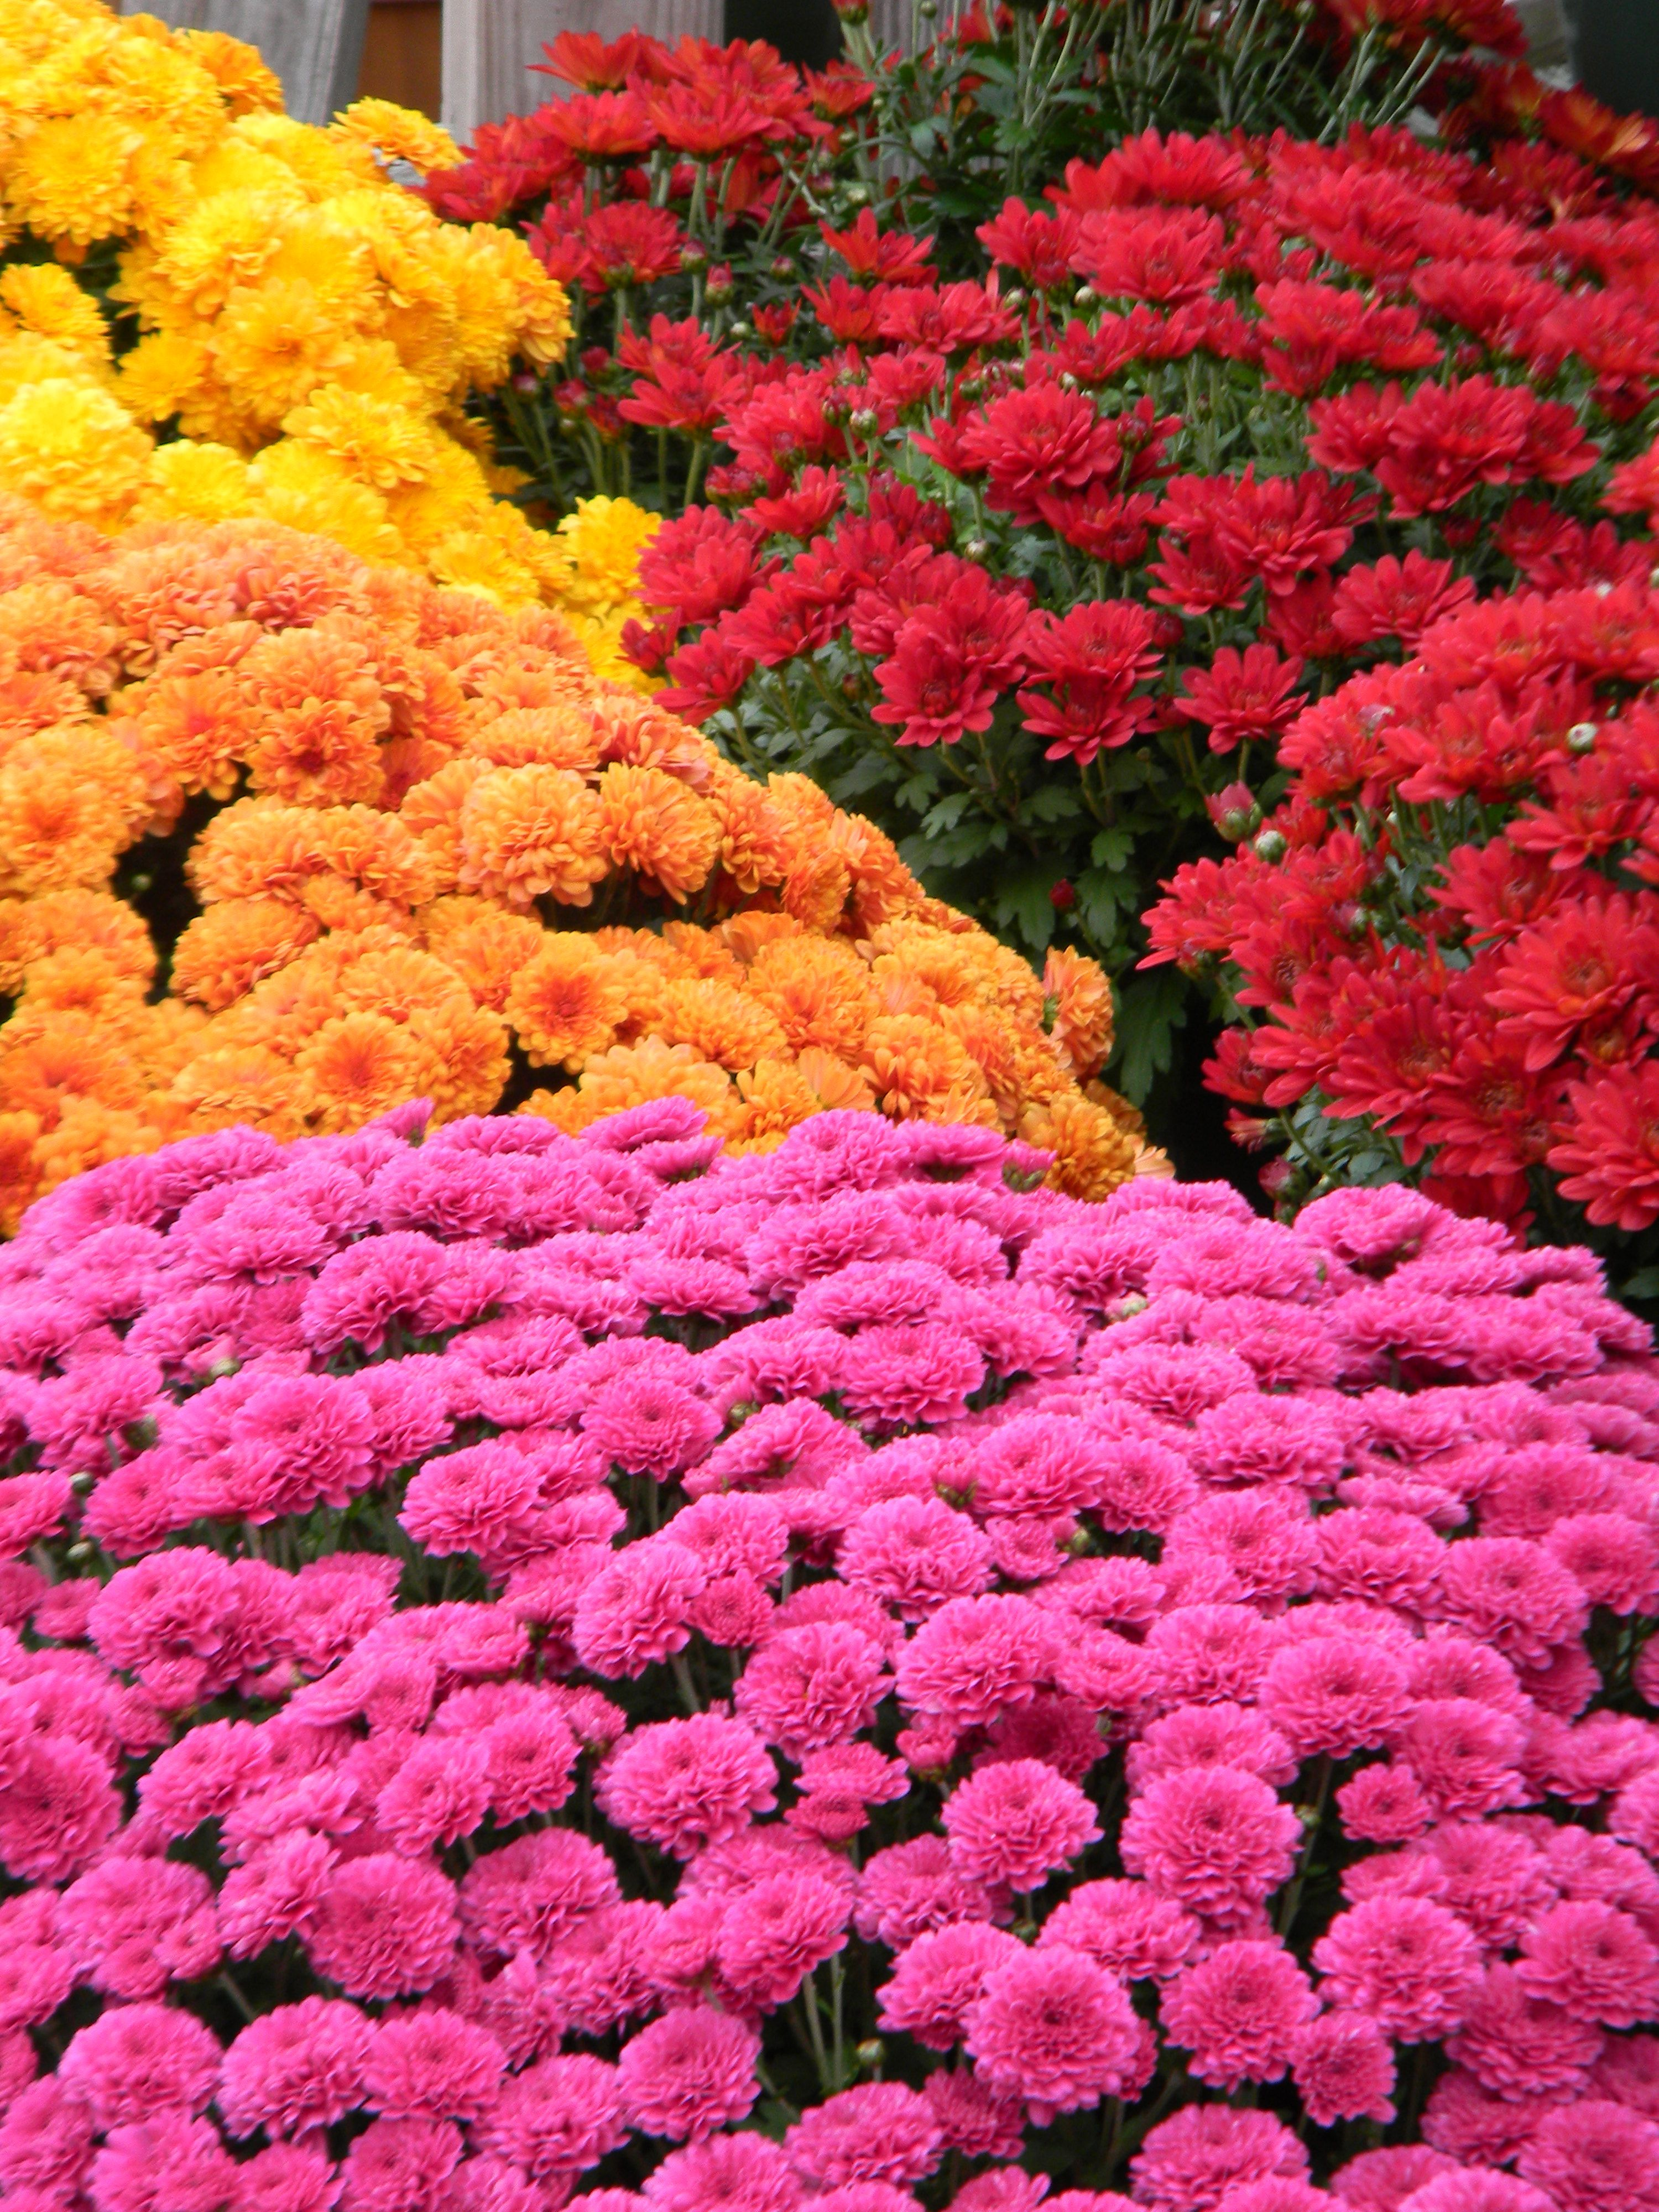 Mums are a perennial bush also do not attract bees backyard mums are a perennial bush also do not attract bees izmirmasajfo